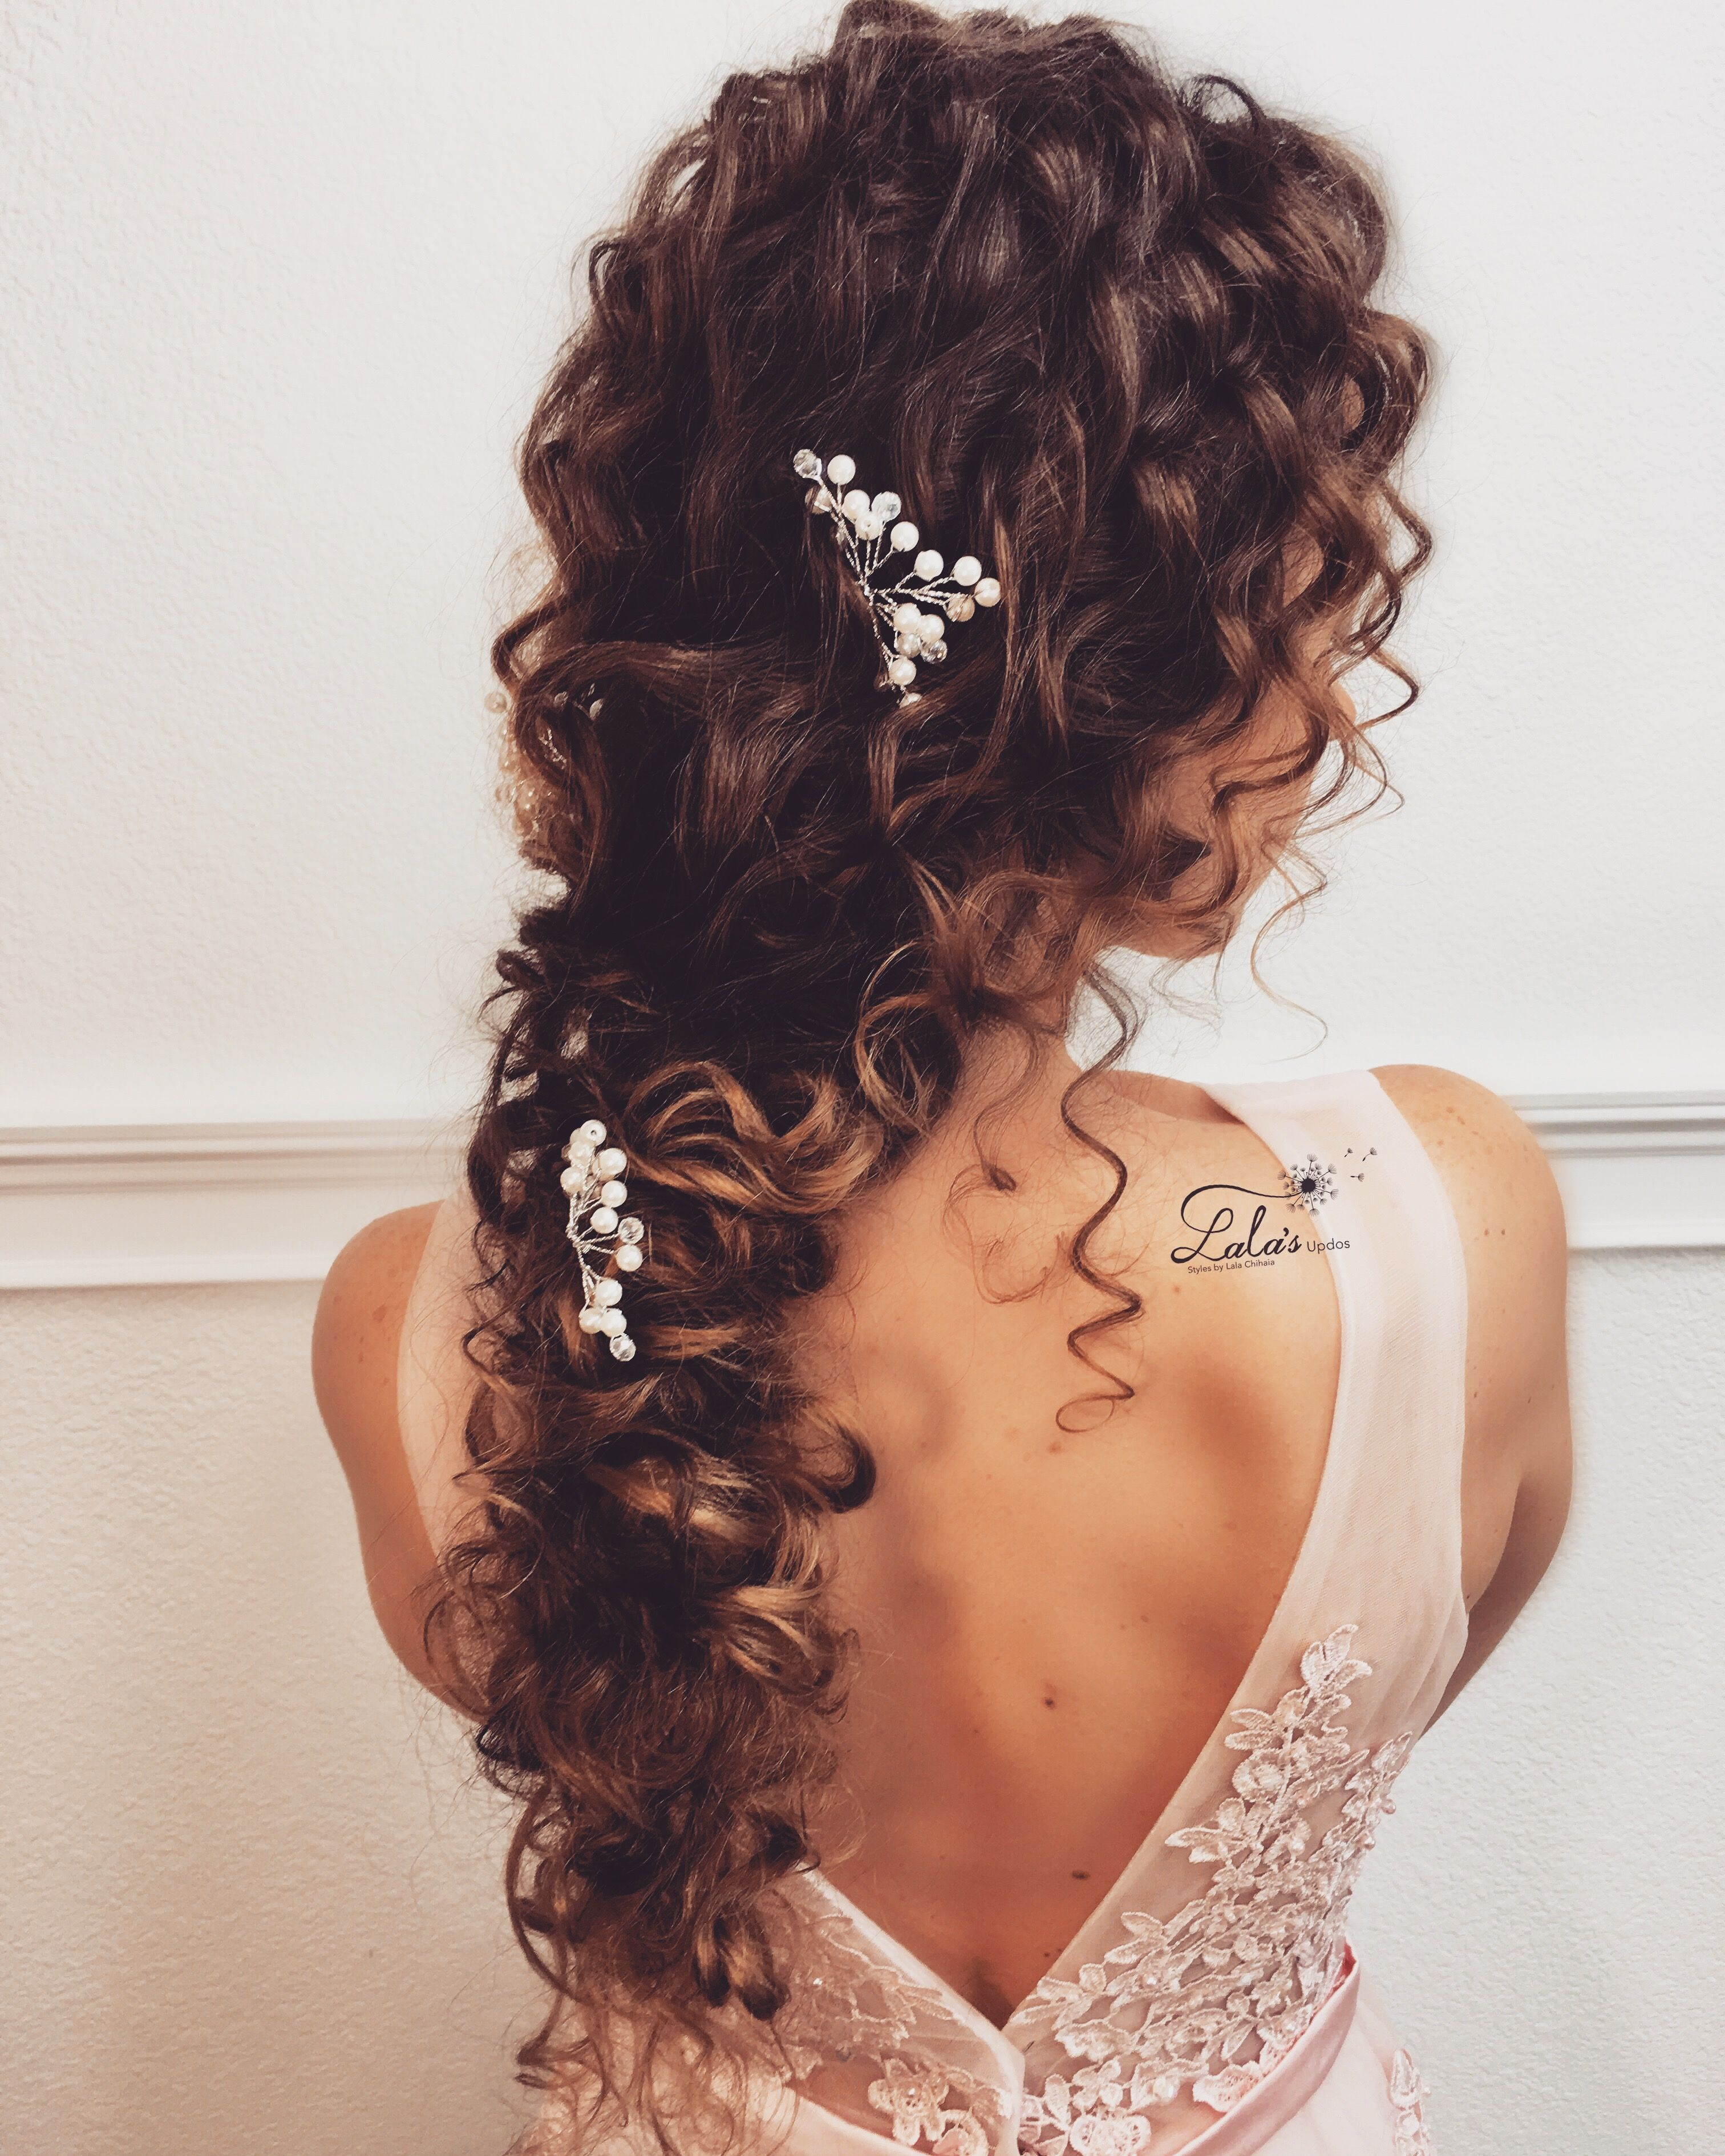 Check Out My Other Pins Thatgoodhair Curly Bridal Hair Curly Hair Styles Curly Wedding Hair